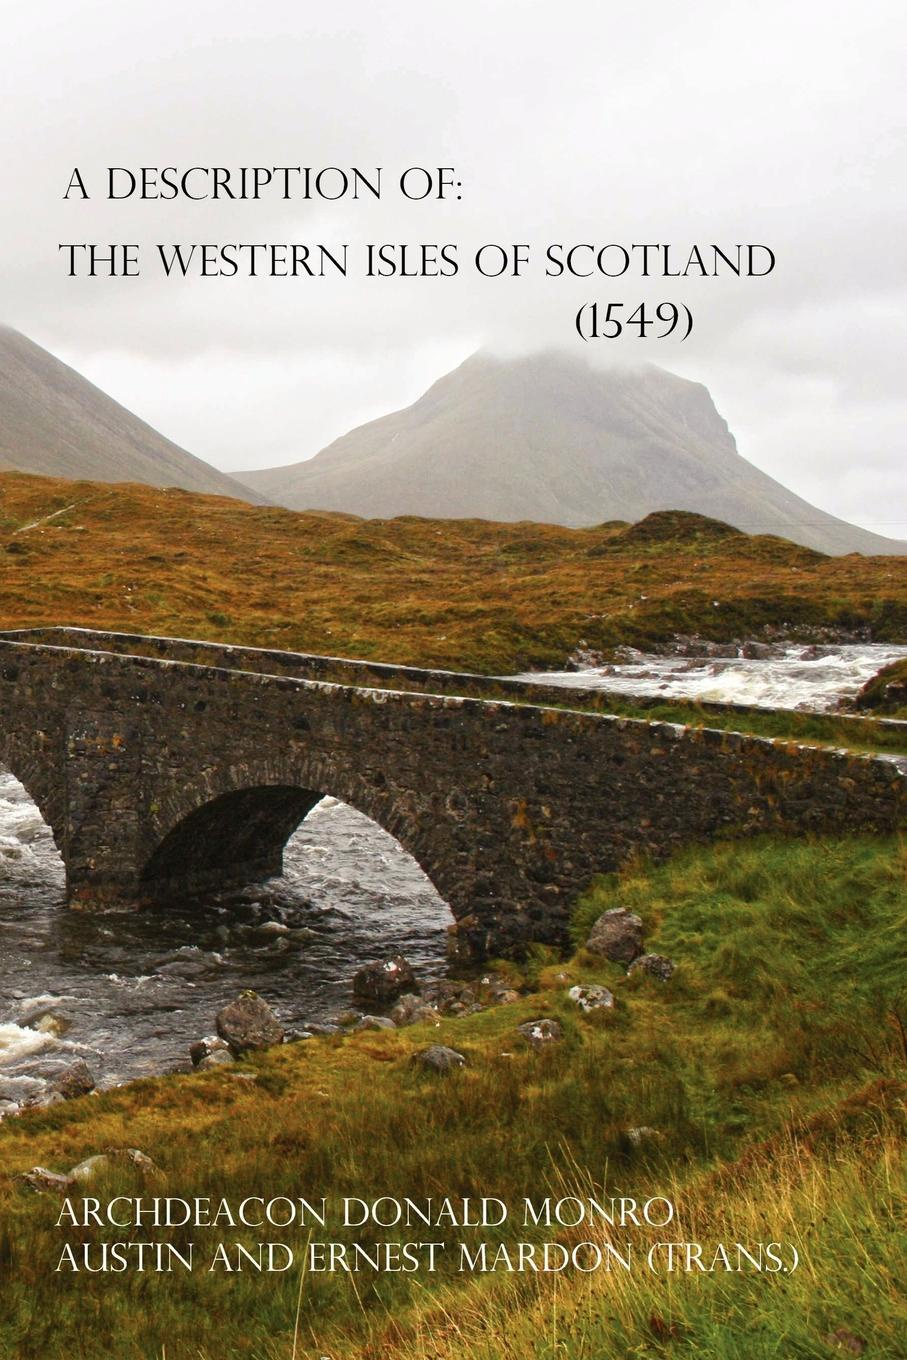 Austin Mardon A Description of the Western Isles of Scotland samuel johnson a journey to the western islands of scotland